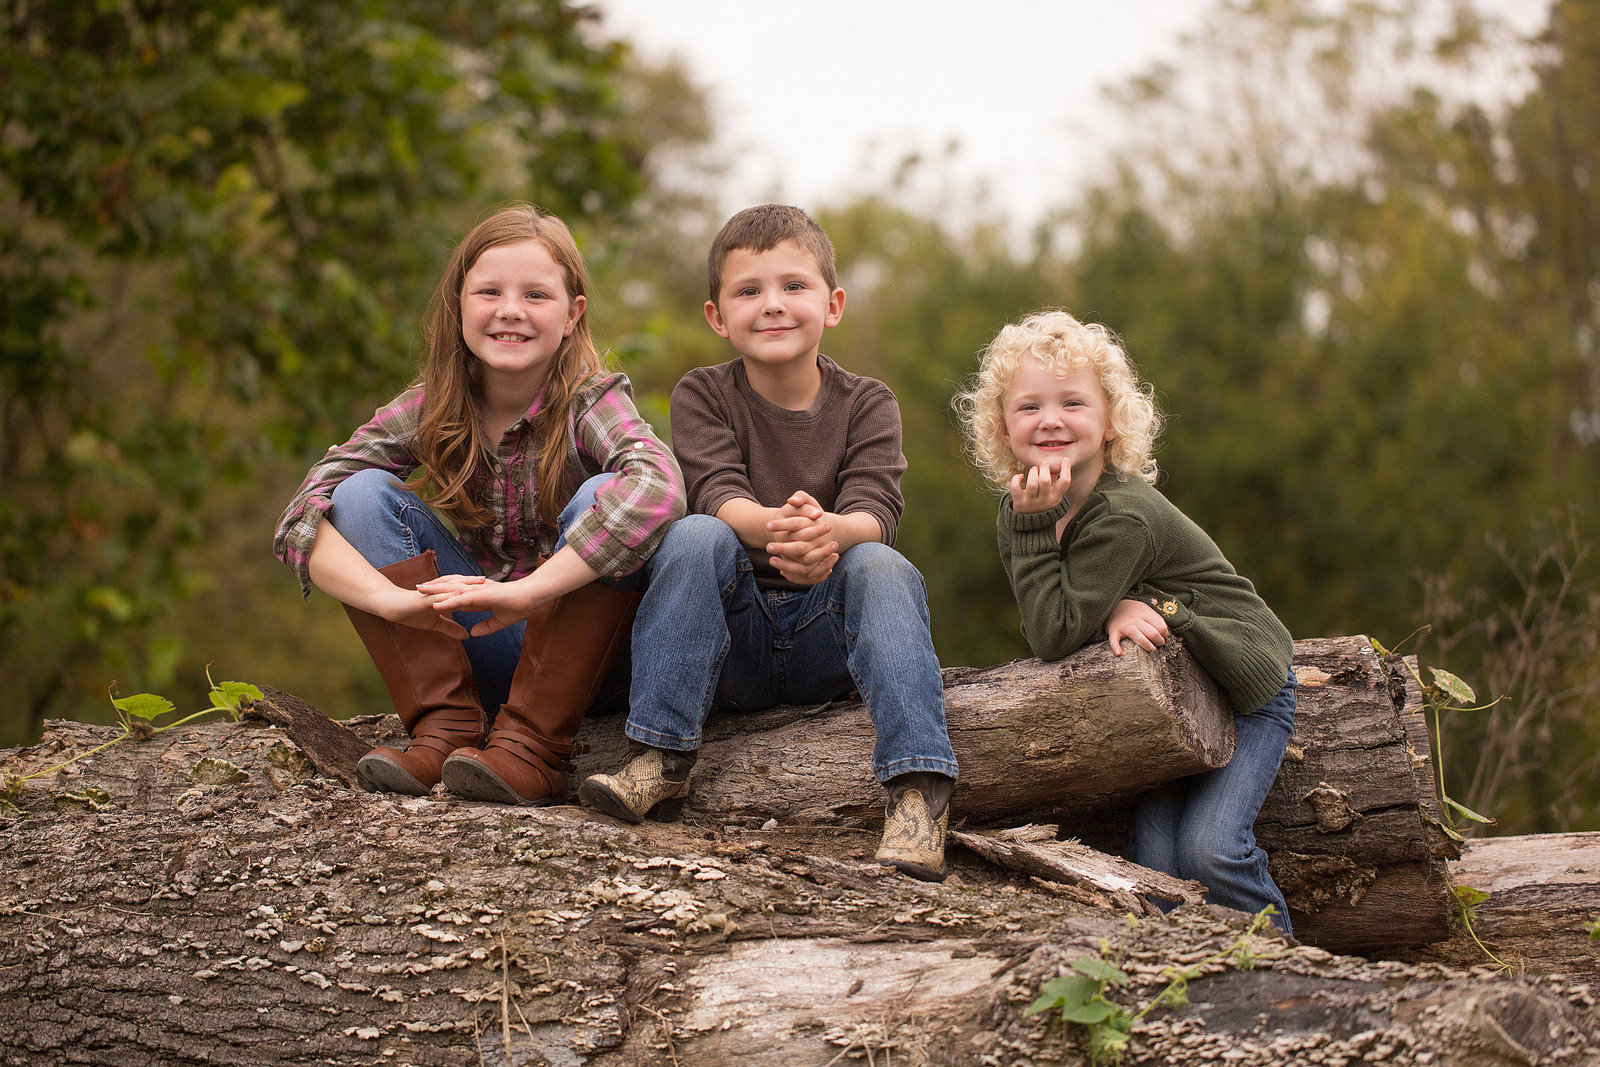 Children pose for photo sitting on pile of logs